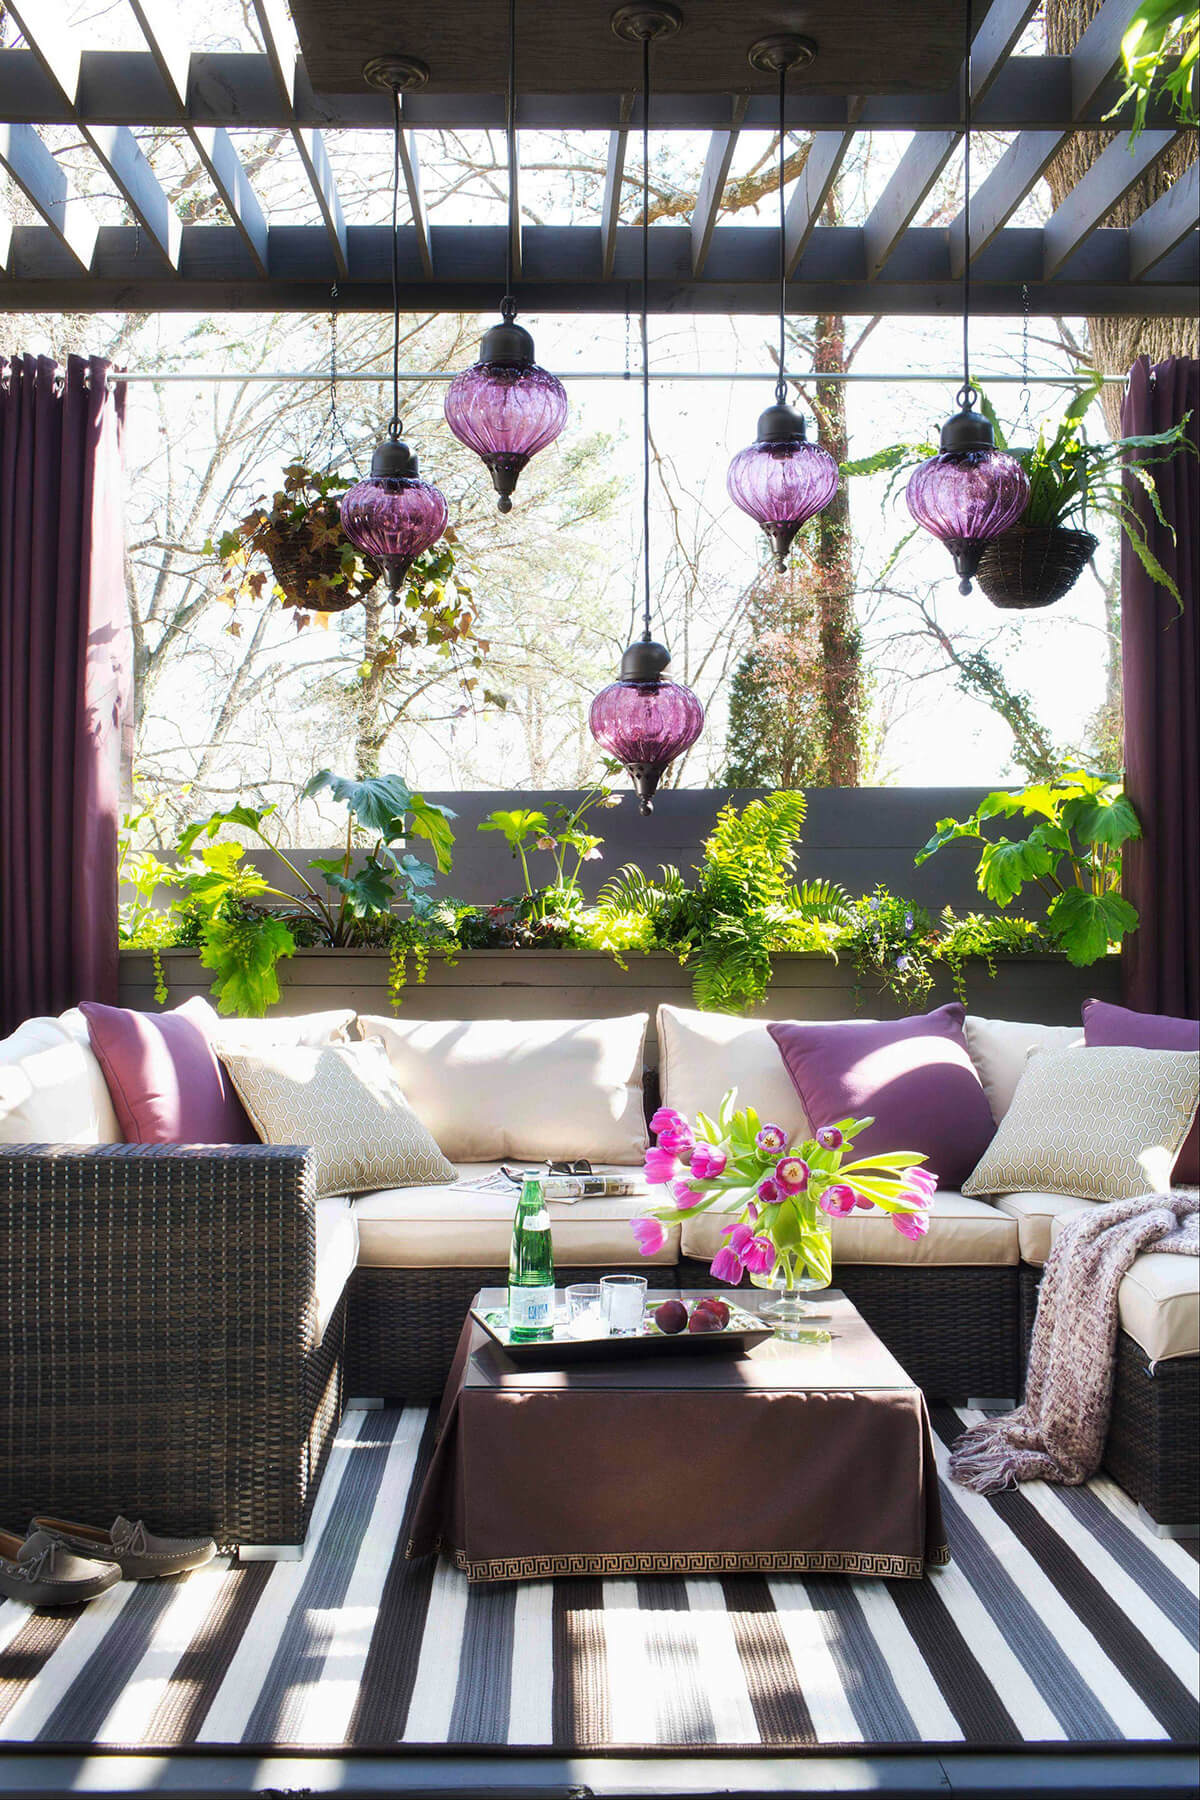 Amethyst Open Air Summer Seating Area